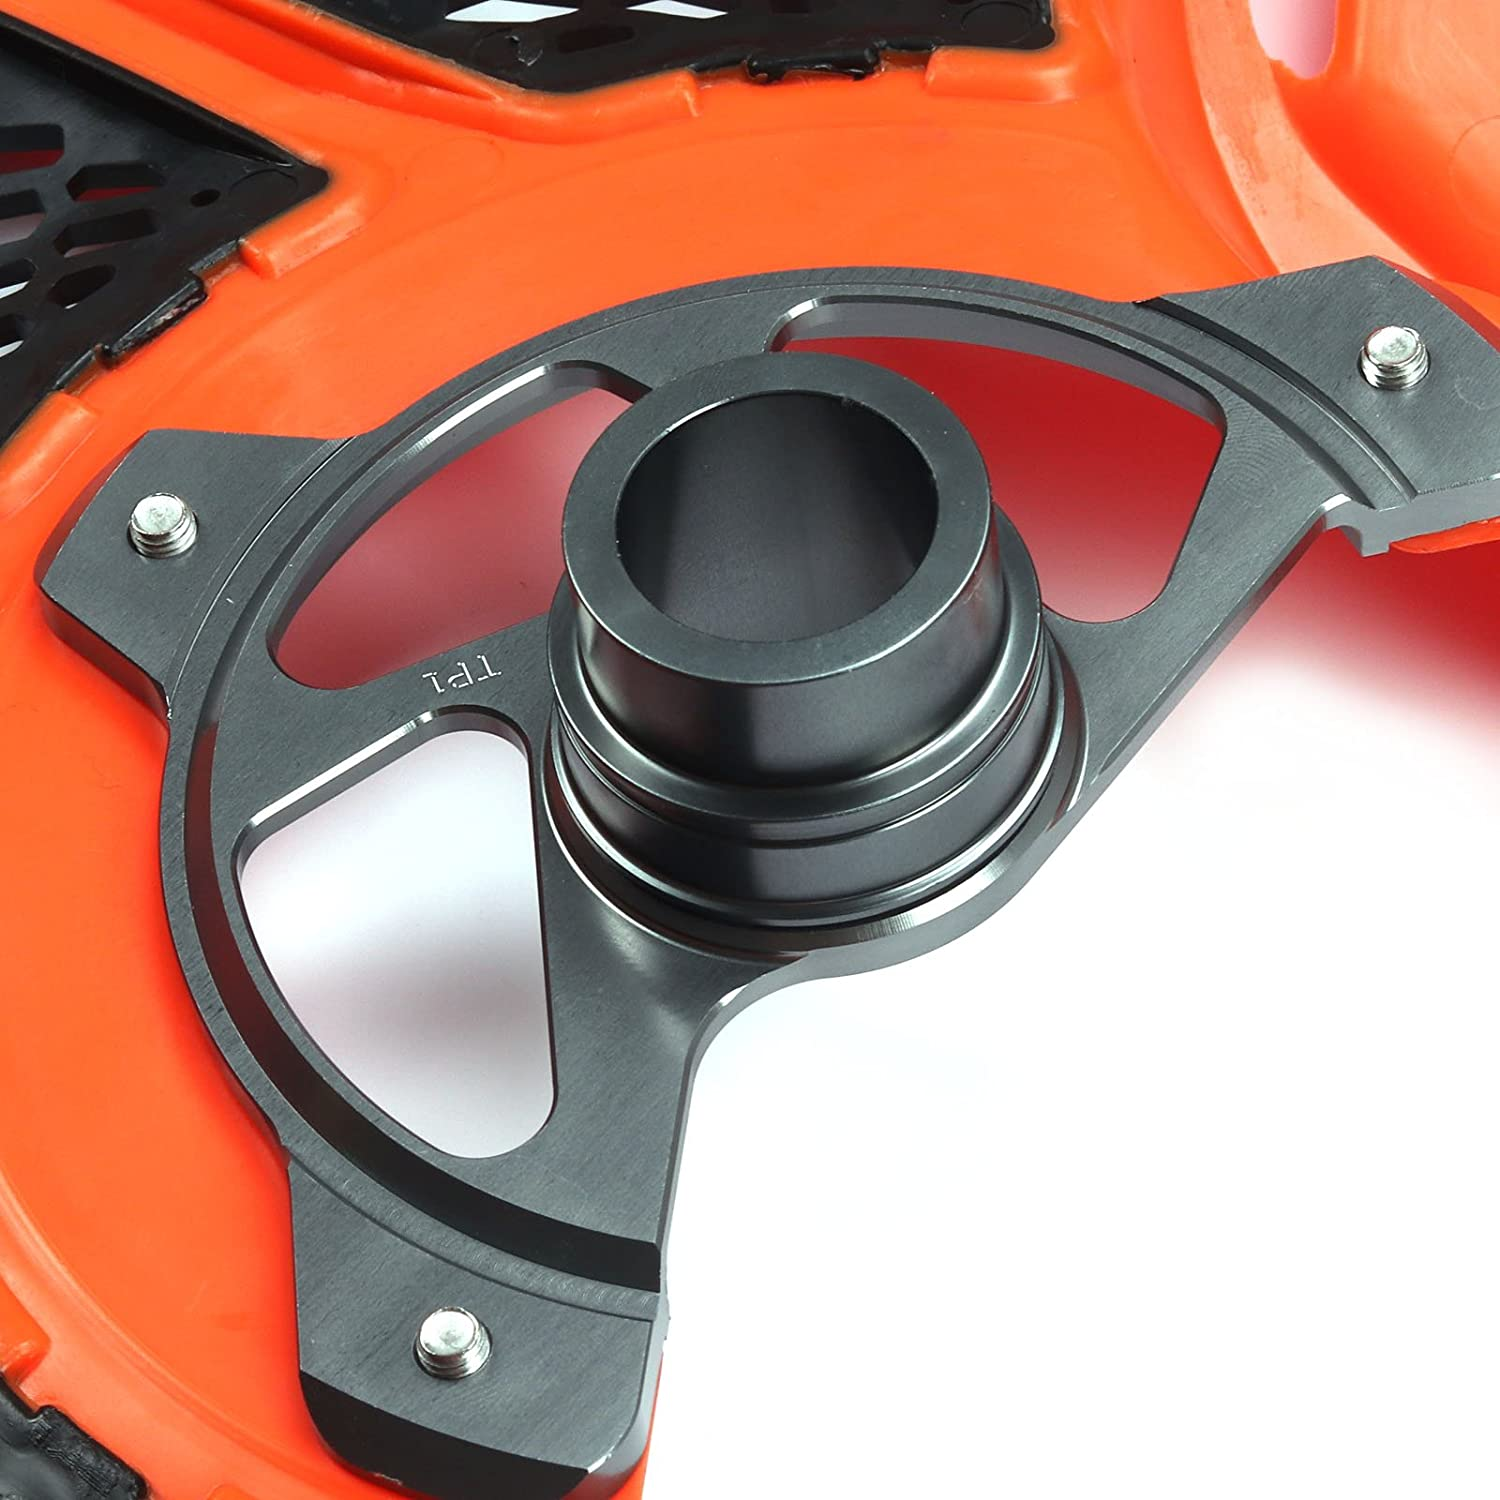 Front Brake Disc Rotor Guard Cover Protector For YAMAHA YZ125 YZ250 08-17 YZ250F YZ450F 07-13 YZ125X YZ250X WR250F WR450F 06-16